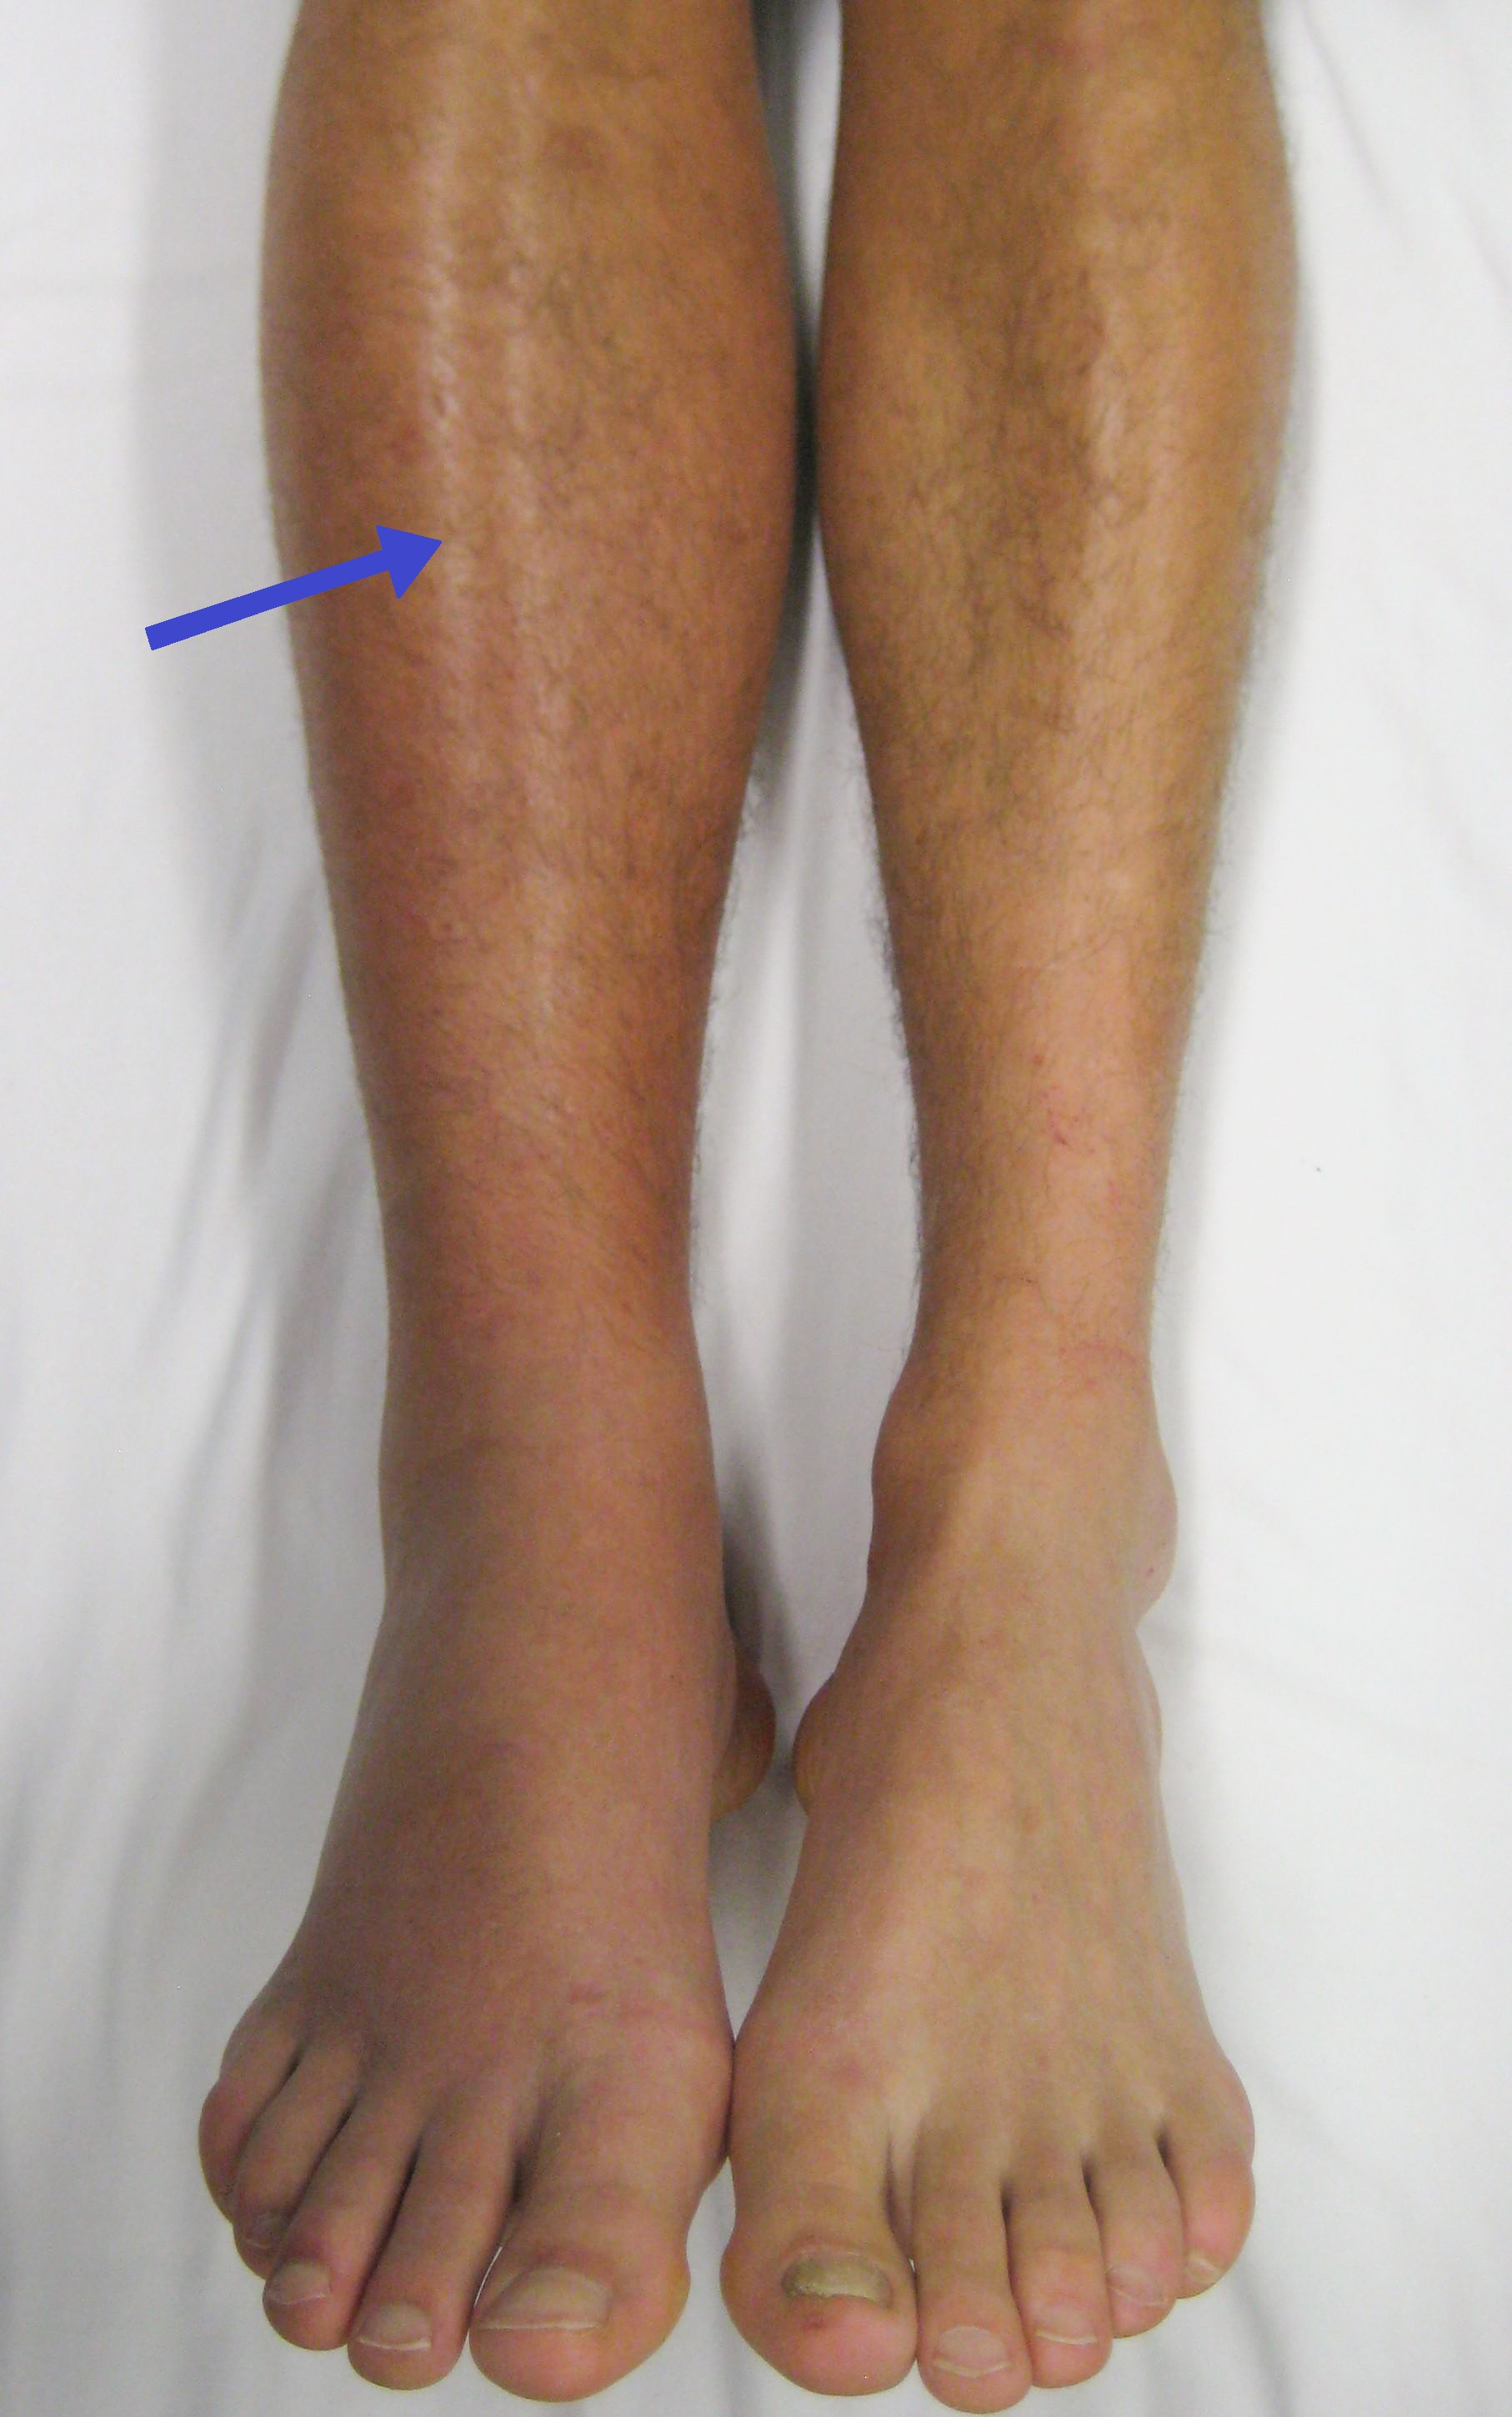 DVT in the right leg with swelling and redness